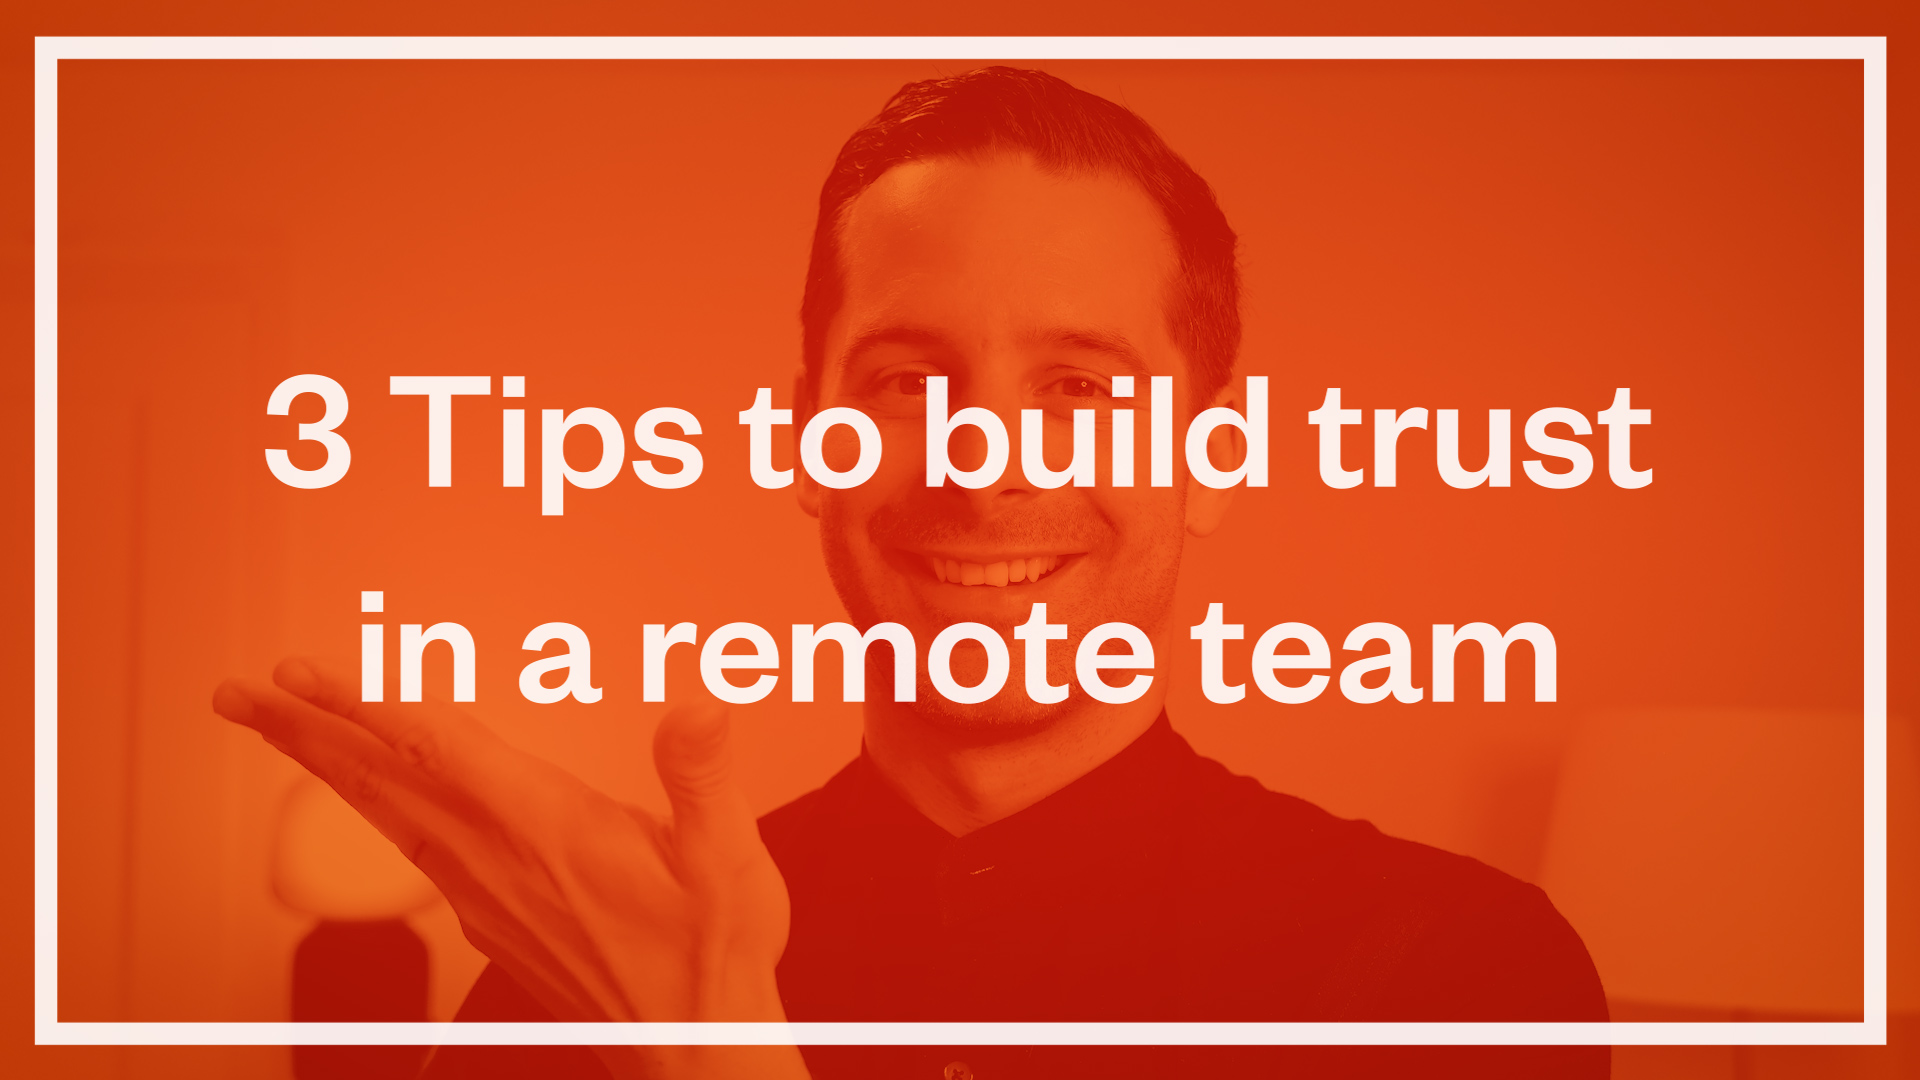 3 Tips to build trust in a remote team